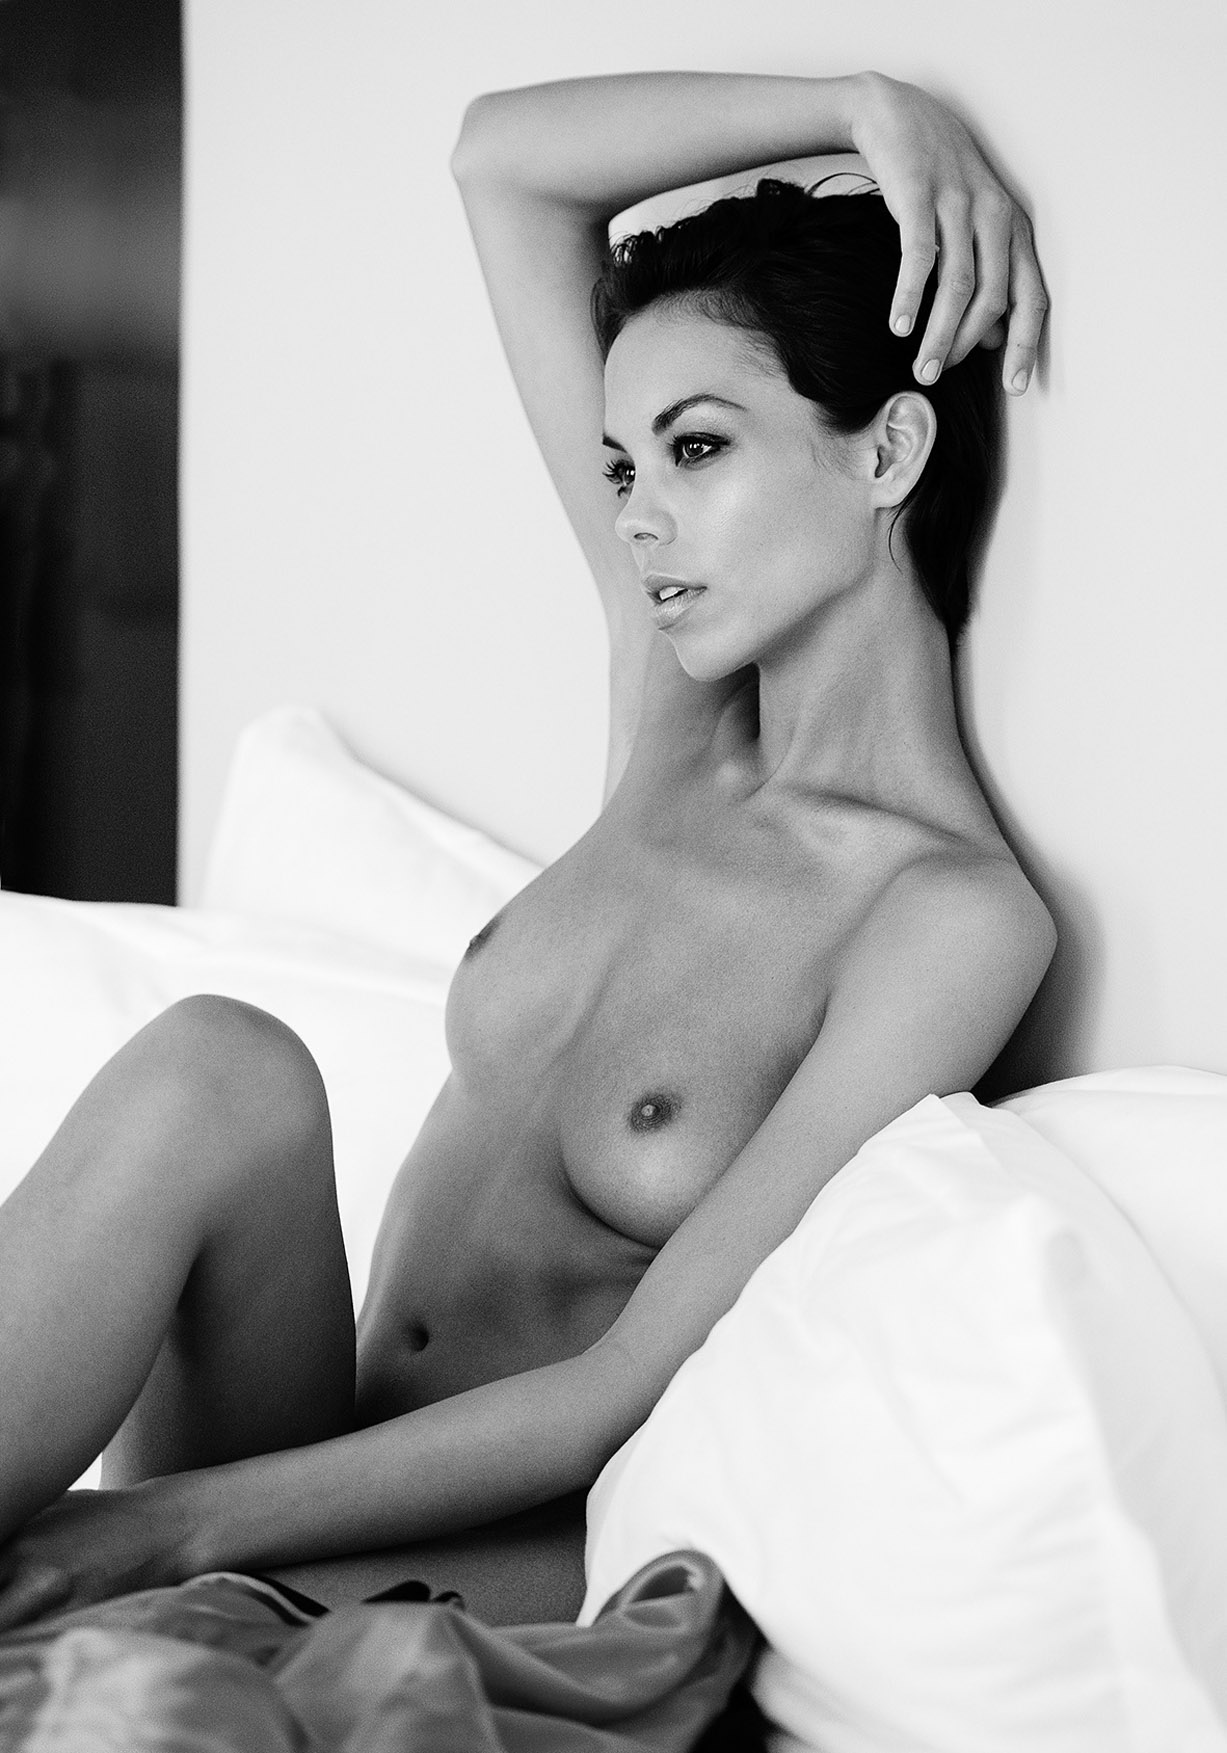 The Book / nude photo by Martin Wieland